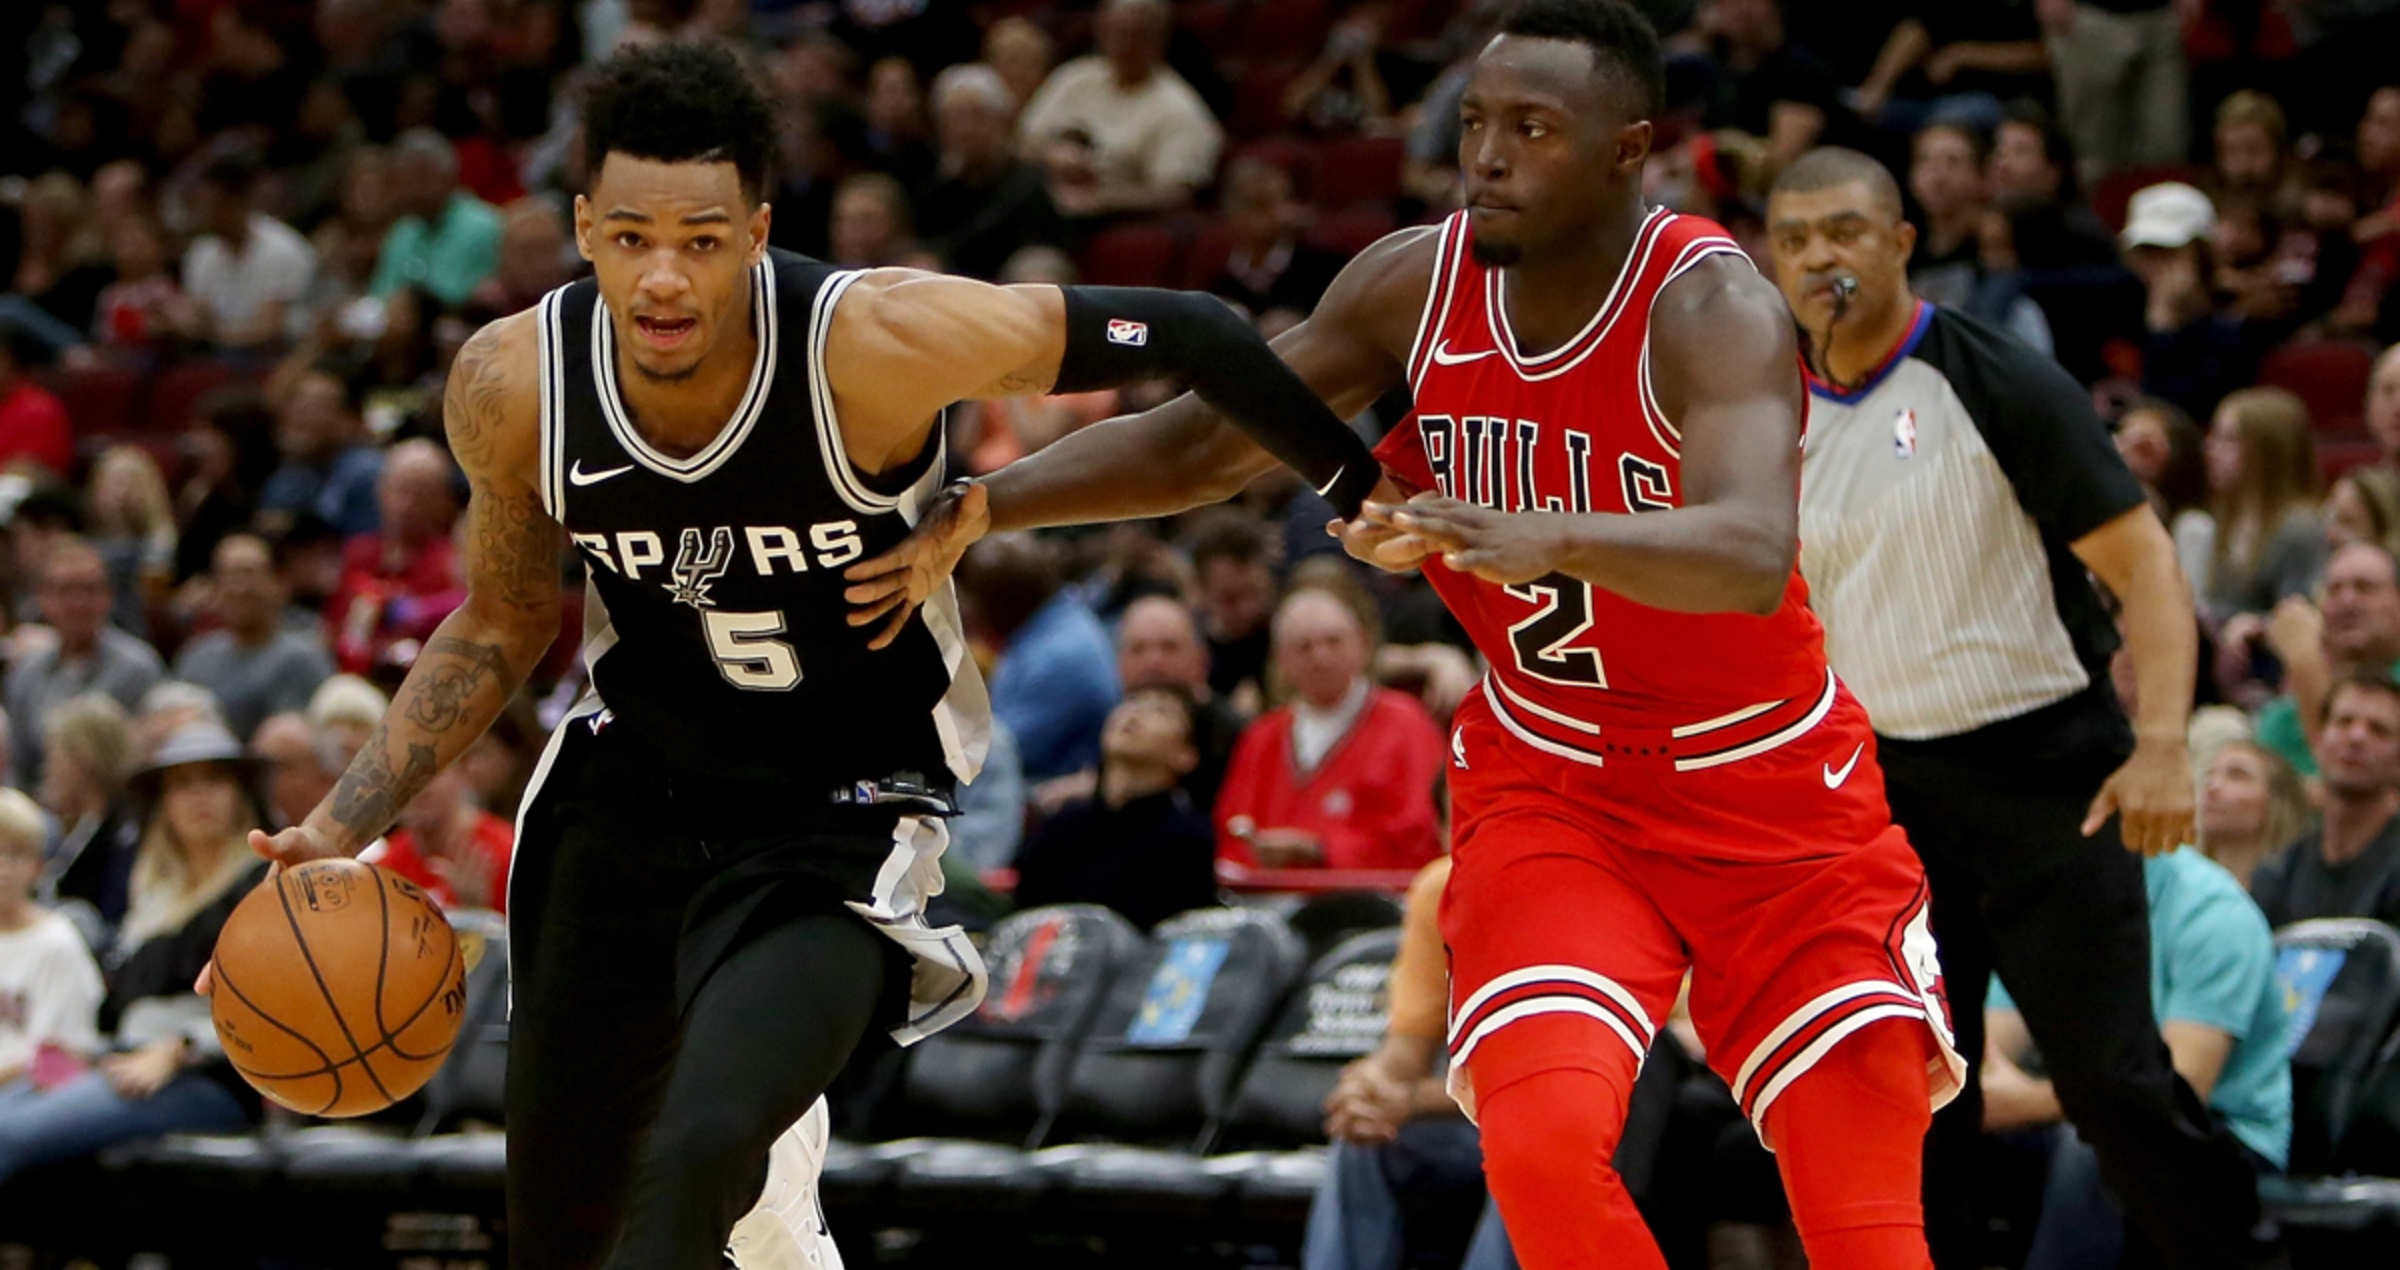 Dejounte Murray #5 of the San Antonio Spurs dribbles the ball while being guarded by Jerian Grant #2 of the Chicago Bulls in the third quarter at the United Center on October 21, 2017 in Chicago, Illinois.